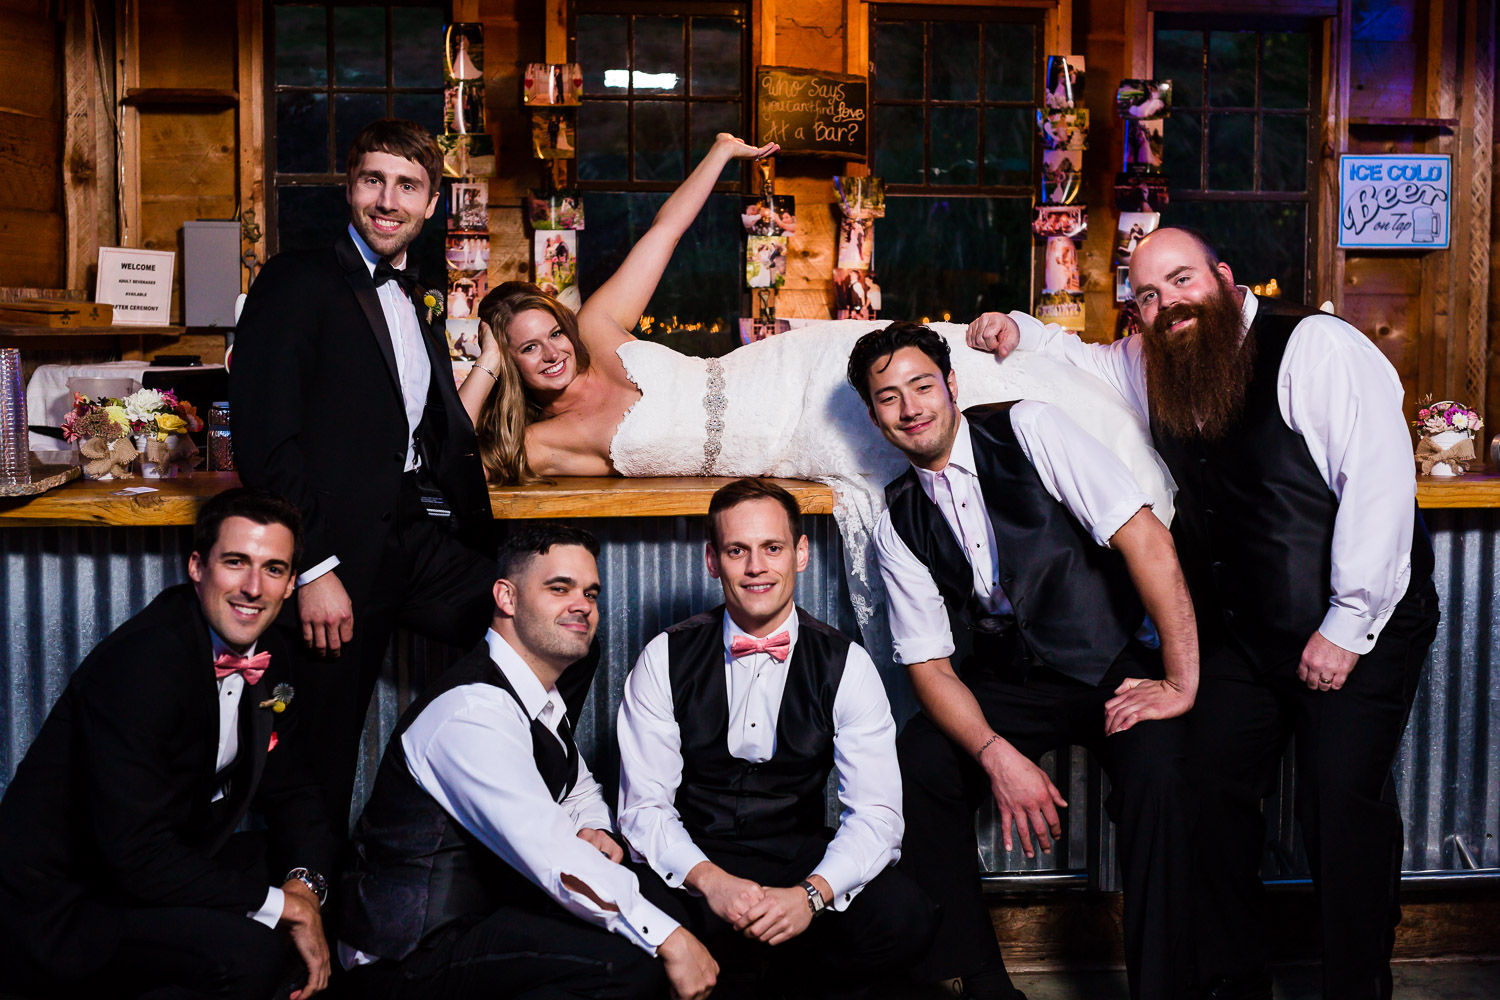 Fun Bar Pose with Bride and Groom - Twin Willow Gardens